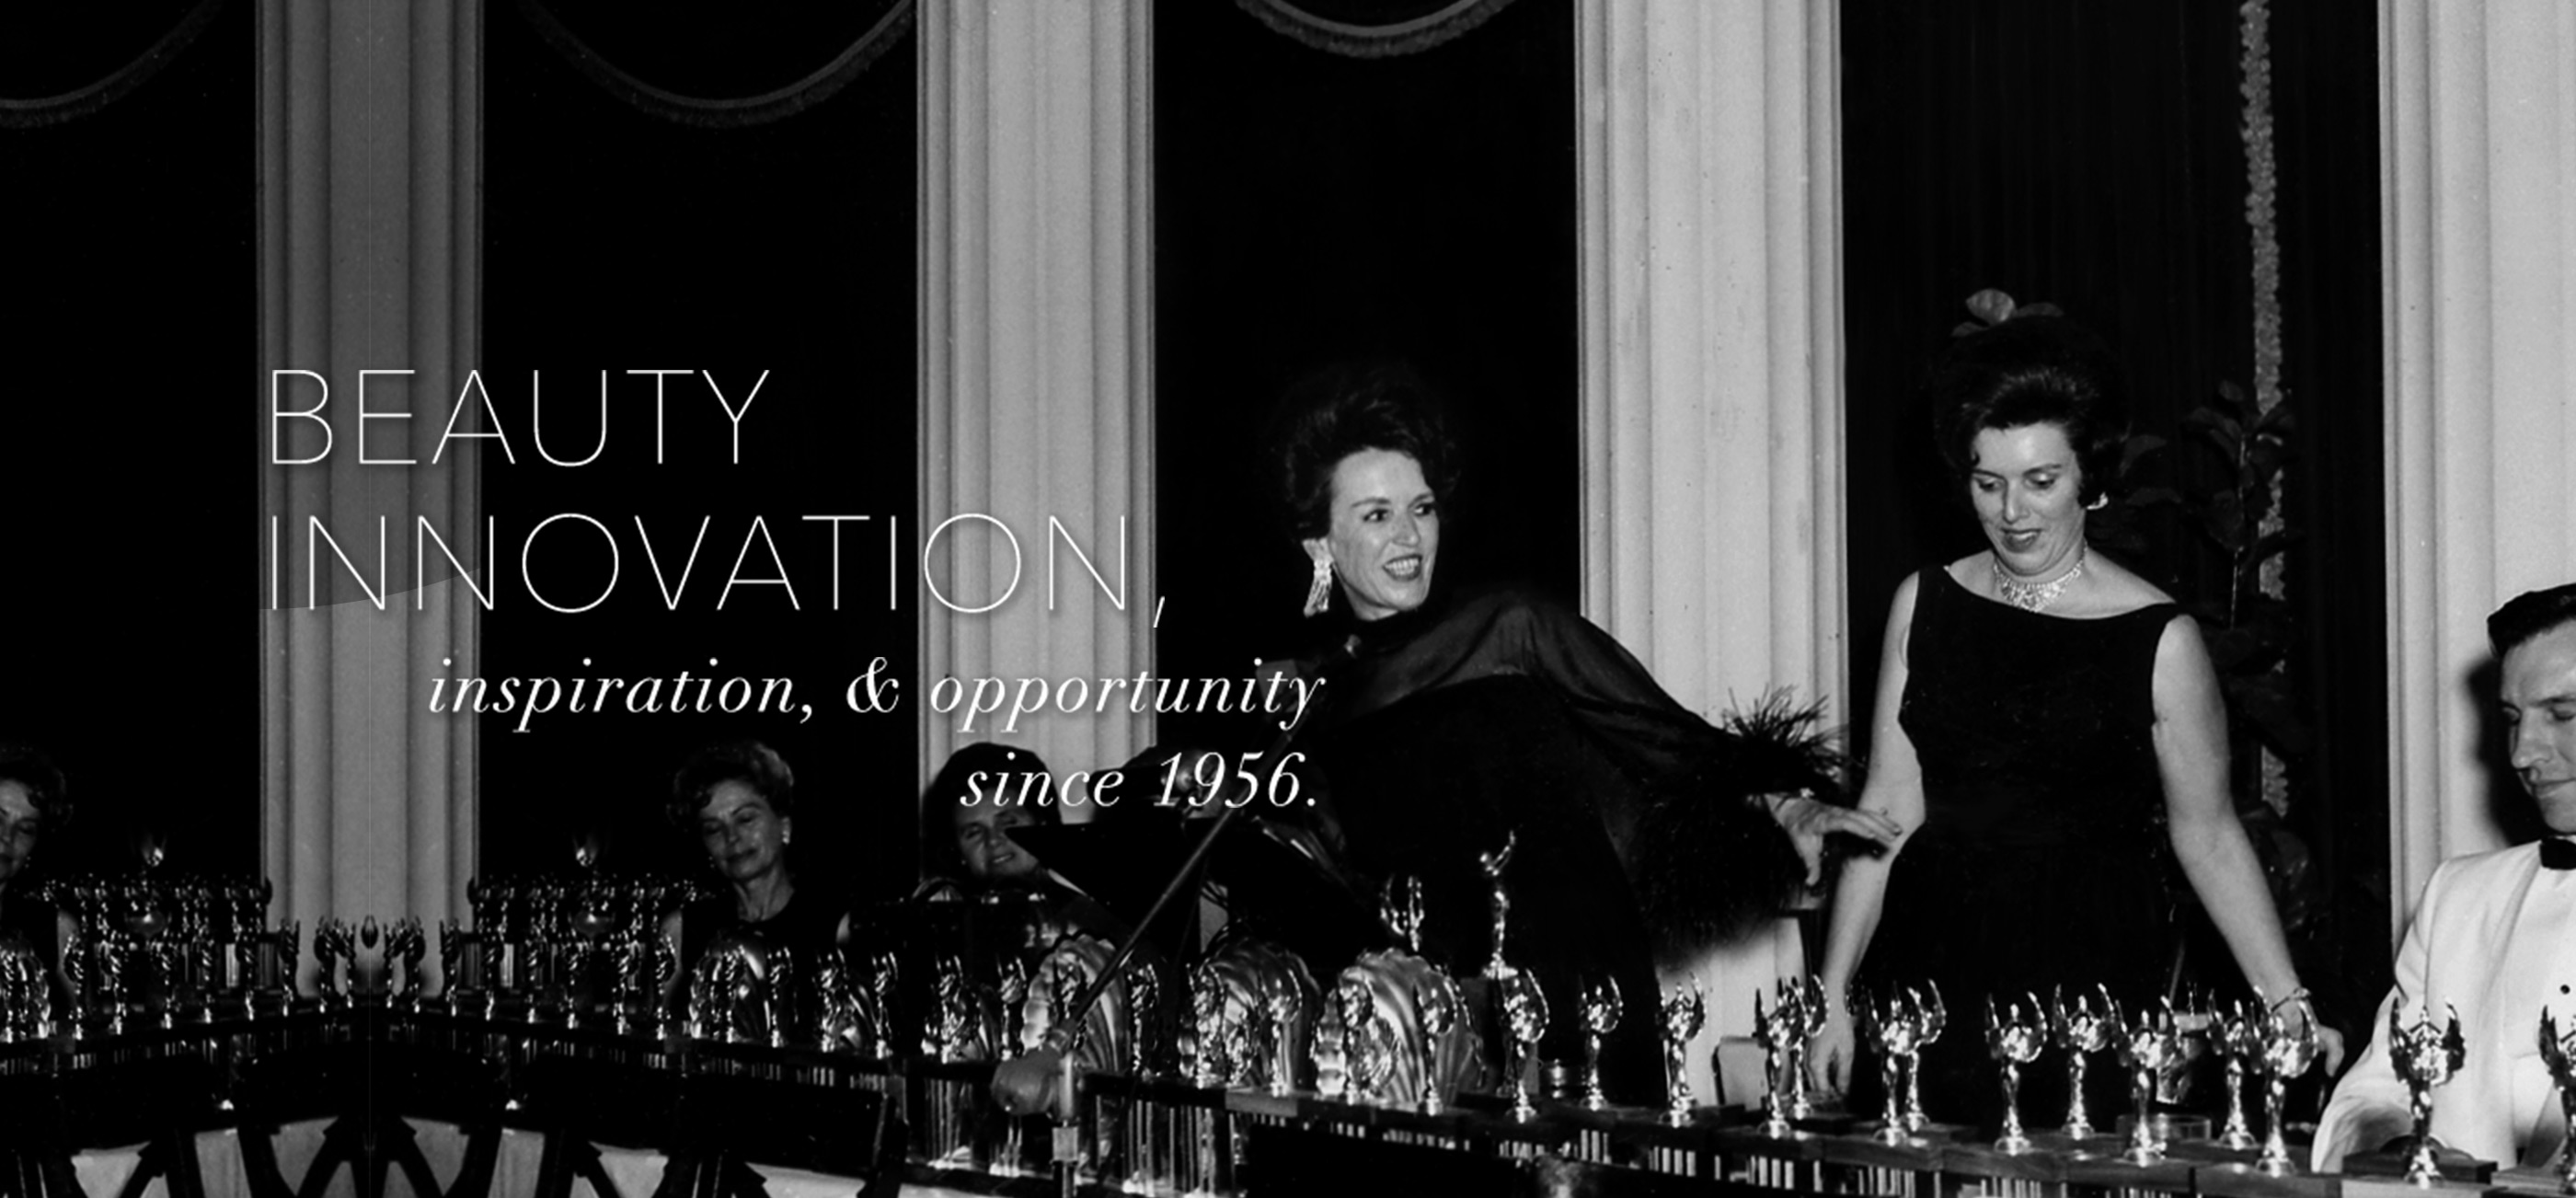 Beauty, Innovation, Inspiration and Opportunity since 1956.